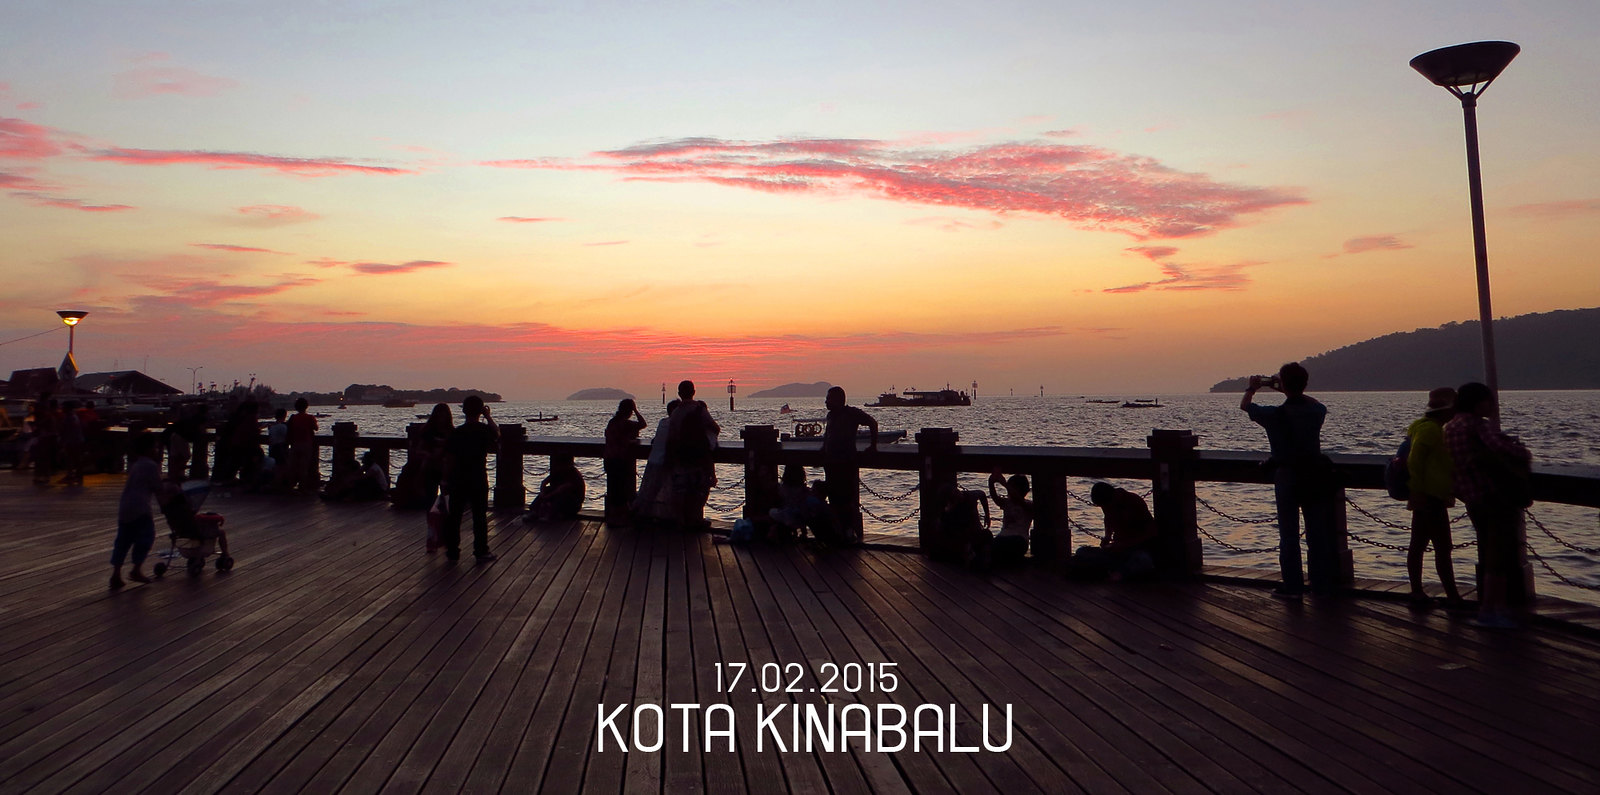 dating site in kota See the best tours for singles in borneo meet other travellers while exploring places like kota kinabalu and sepilok all major brands biggest selection best prices.